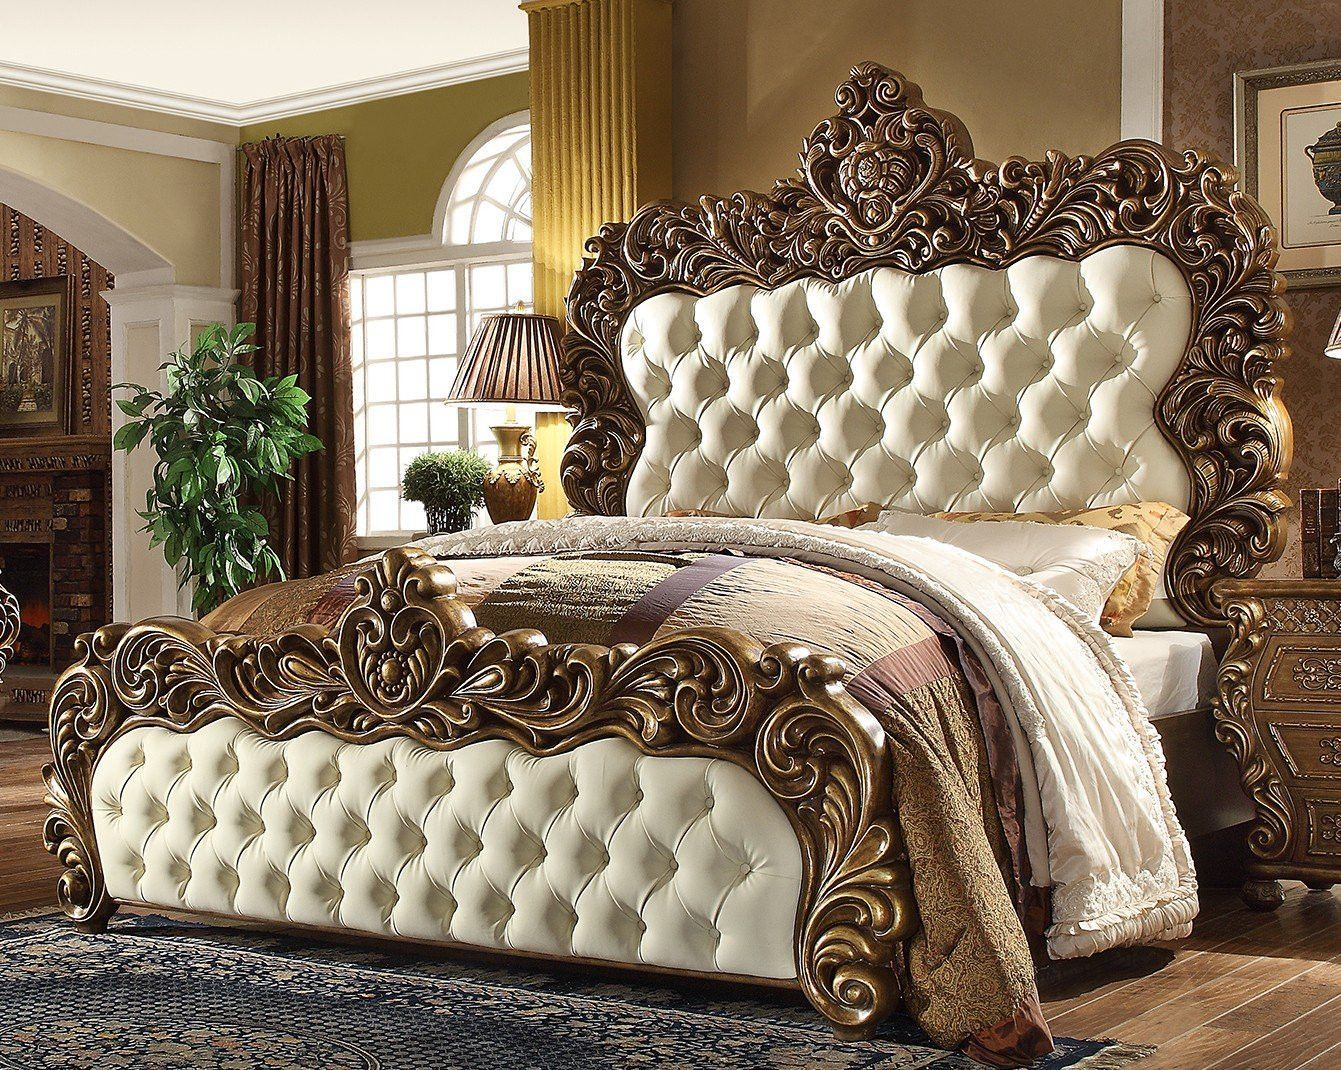 Homey Design Eastern King Bed Hd Description Rich